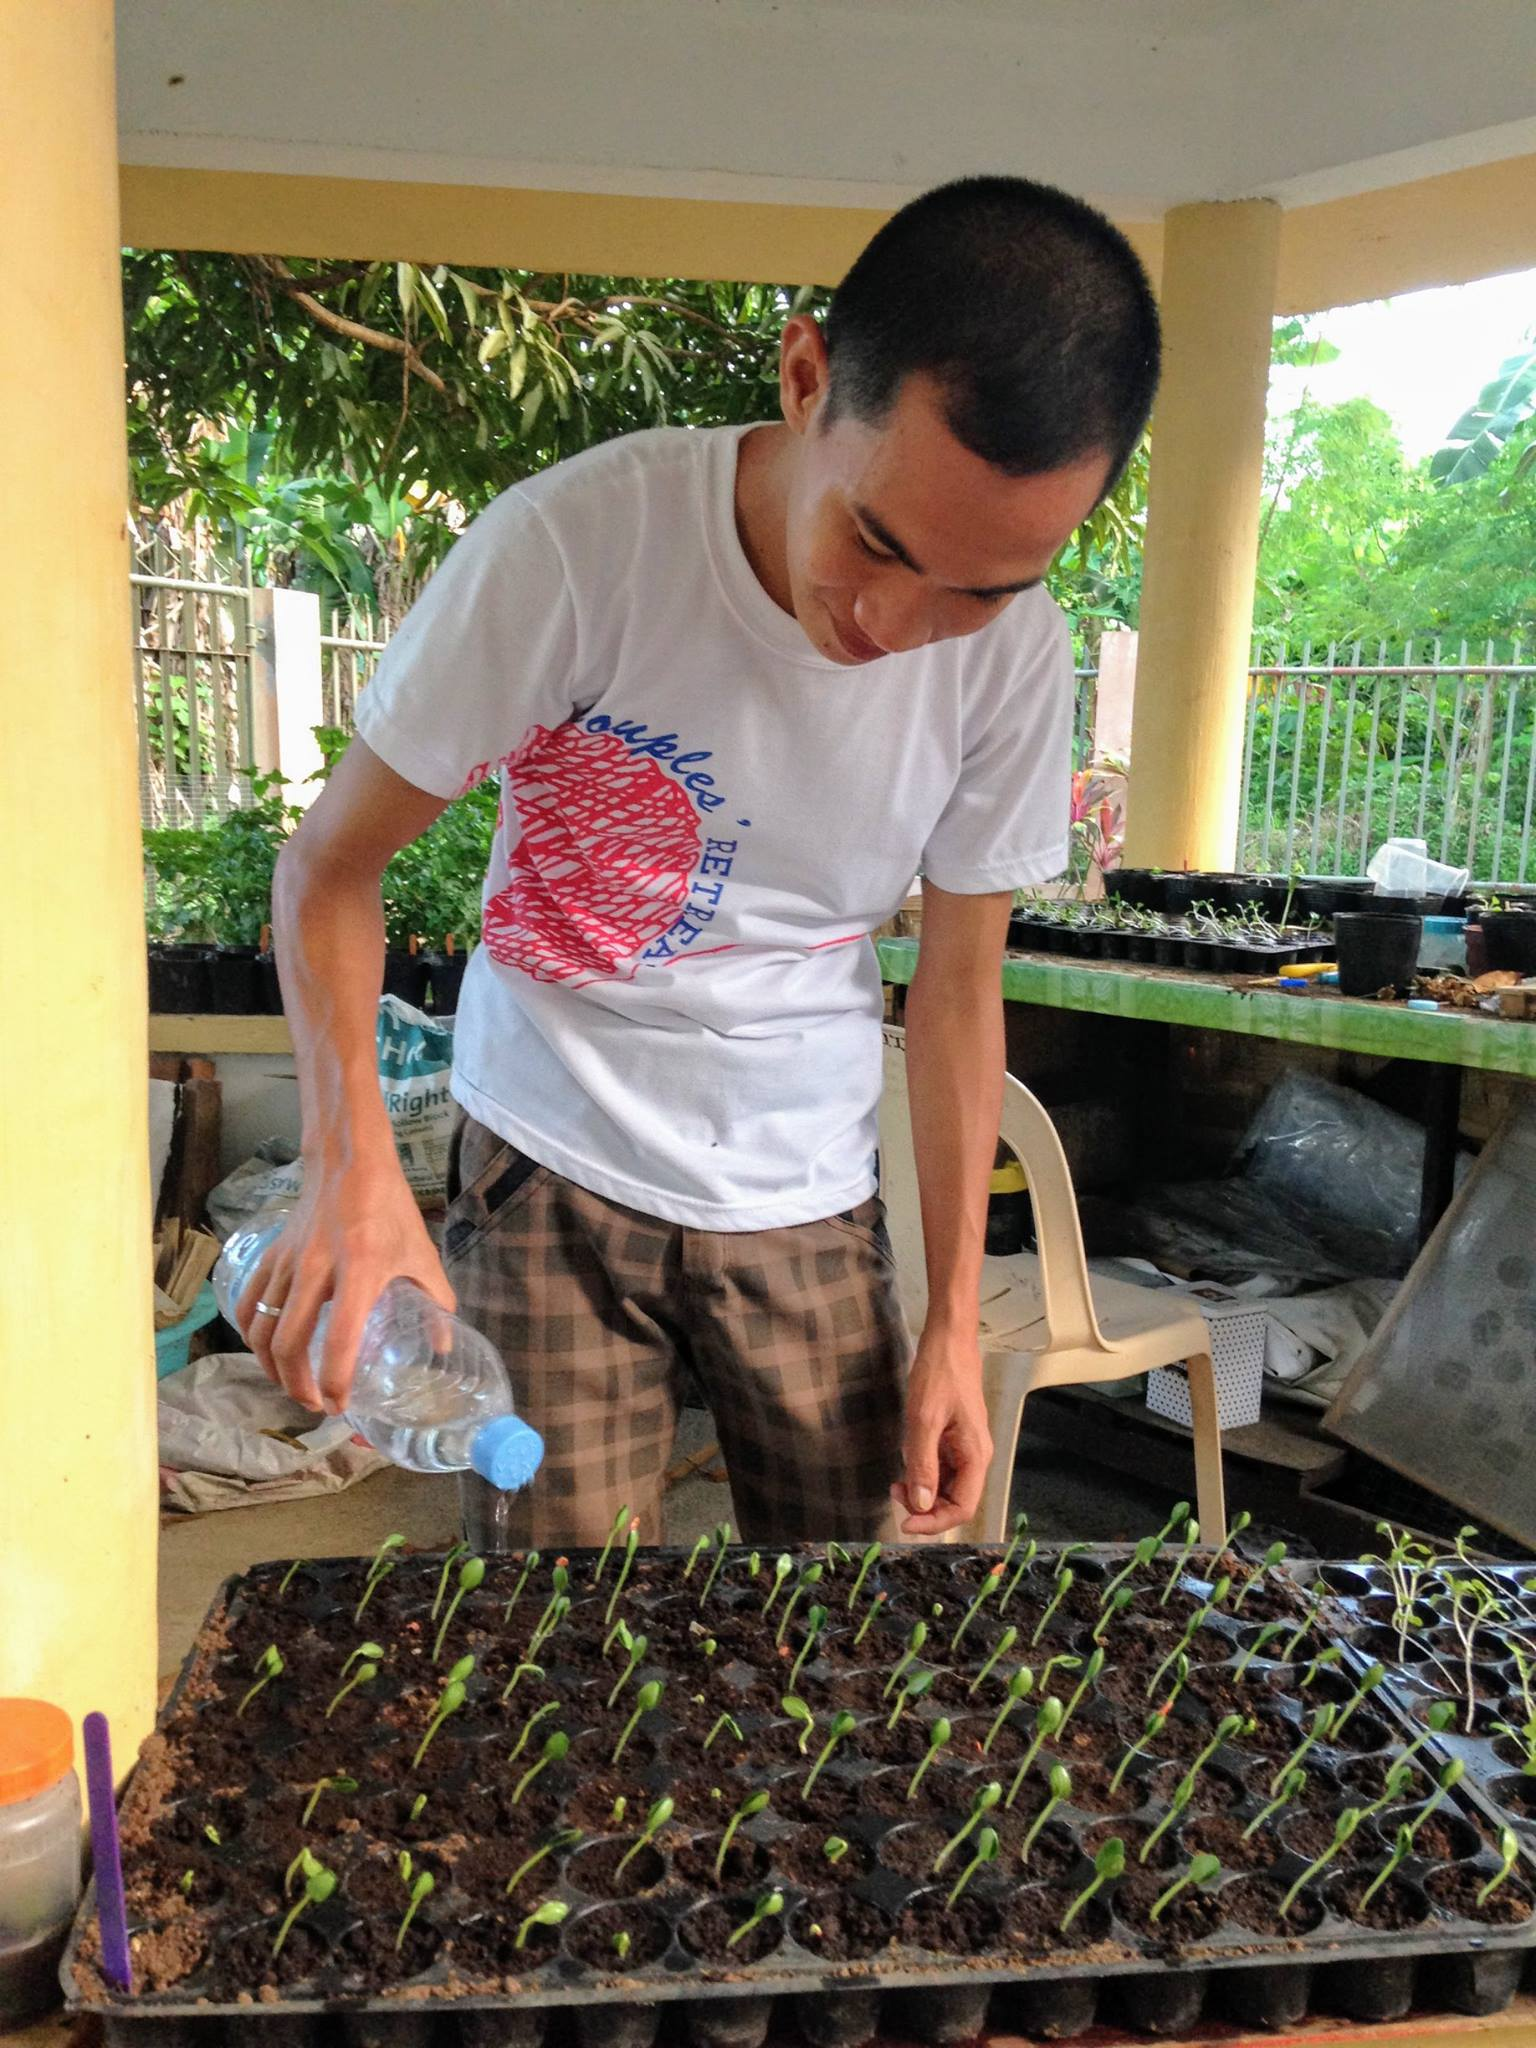 Developing a garden was one of the variety of skills Pepito was stretched learn during his internship at Tahanan.